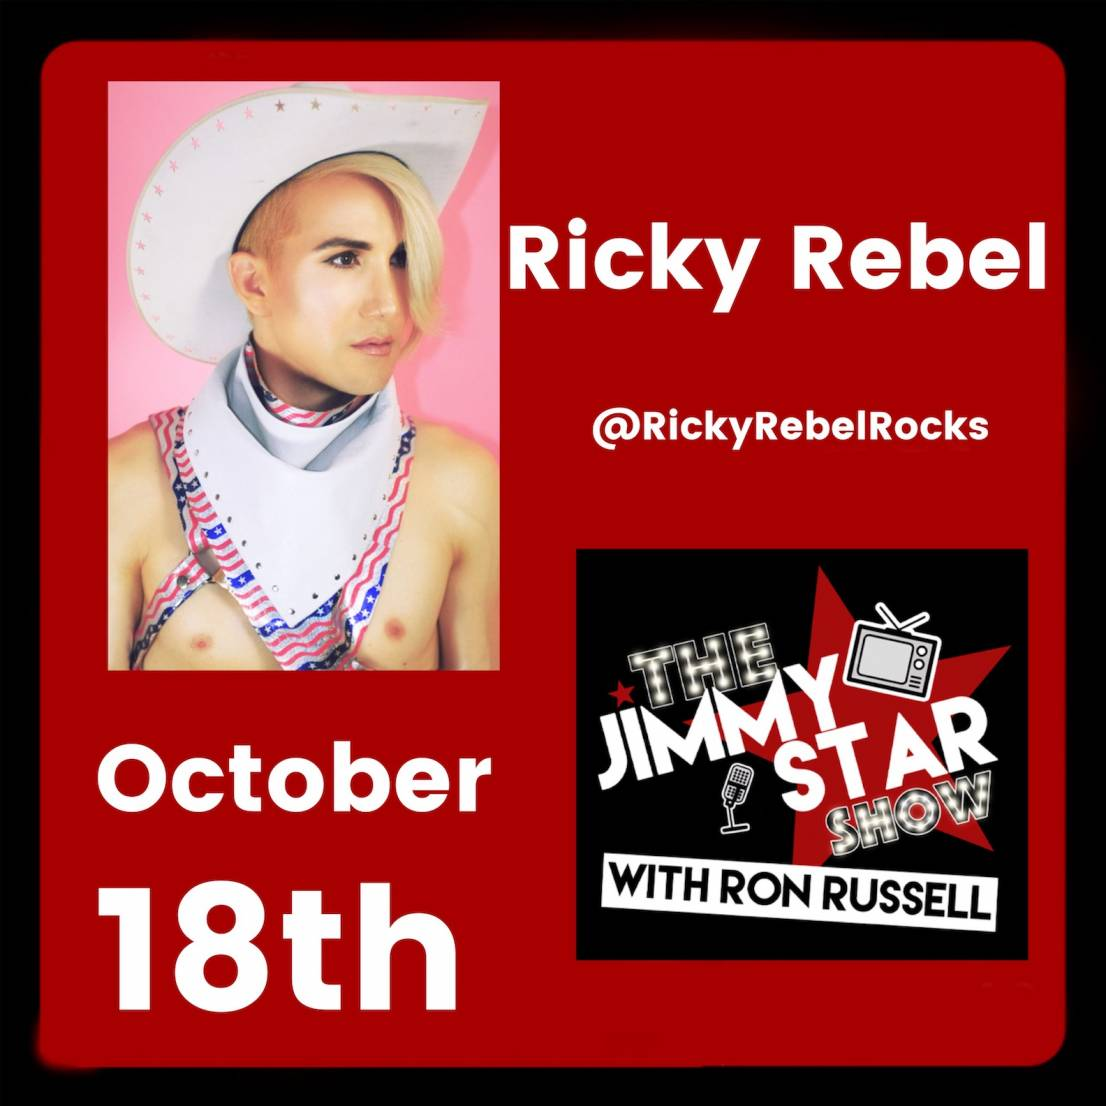 Ricky Rebel On The Jimmy Star Show With Ron Russell